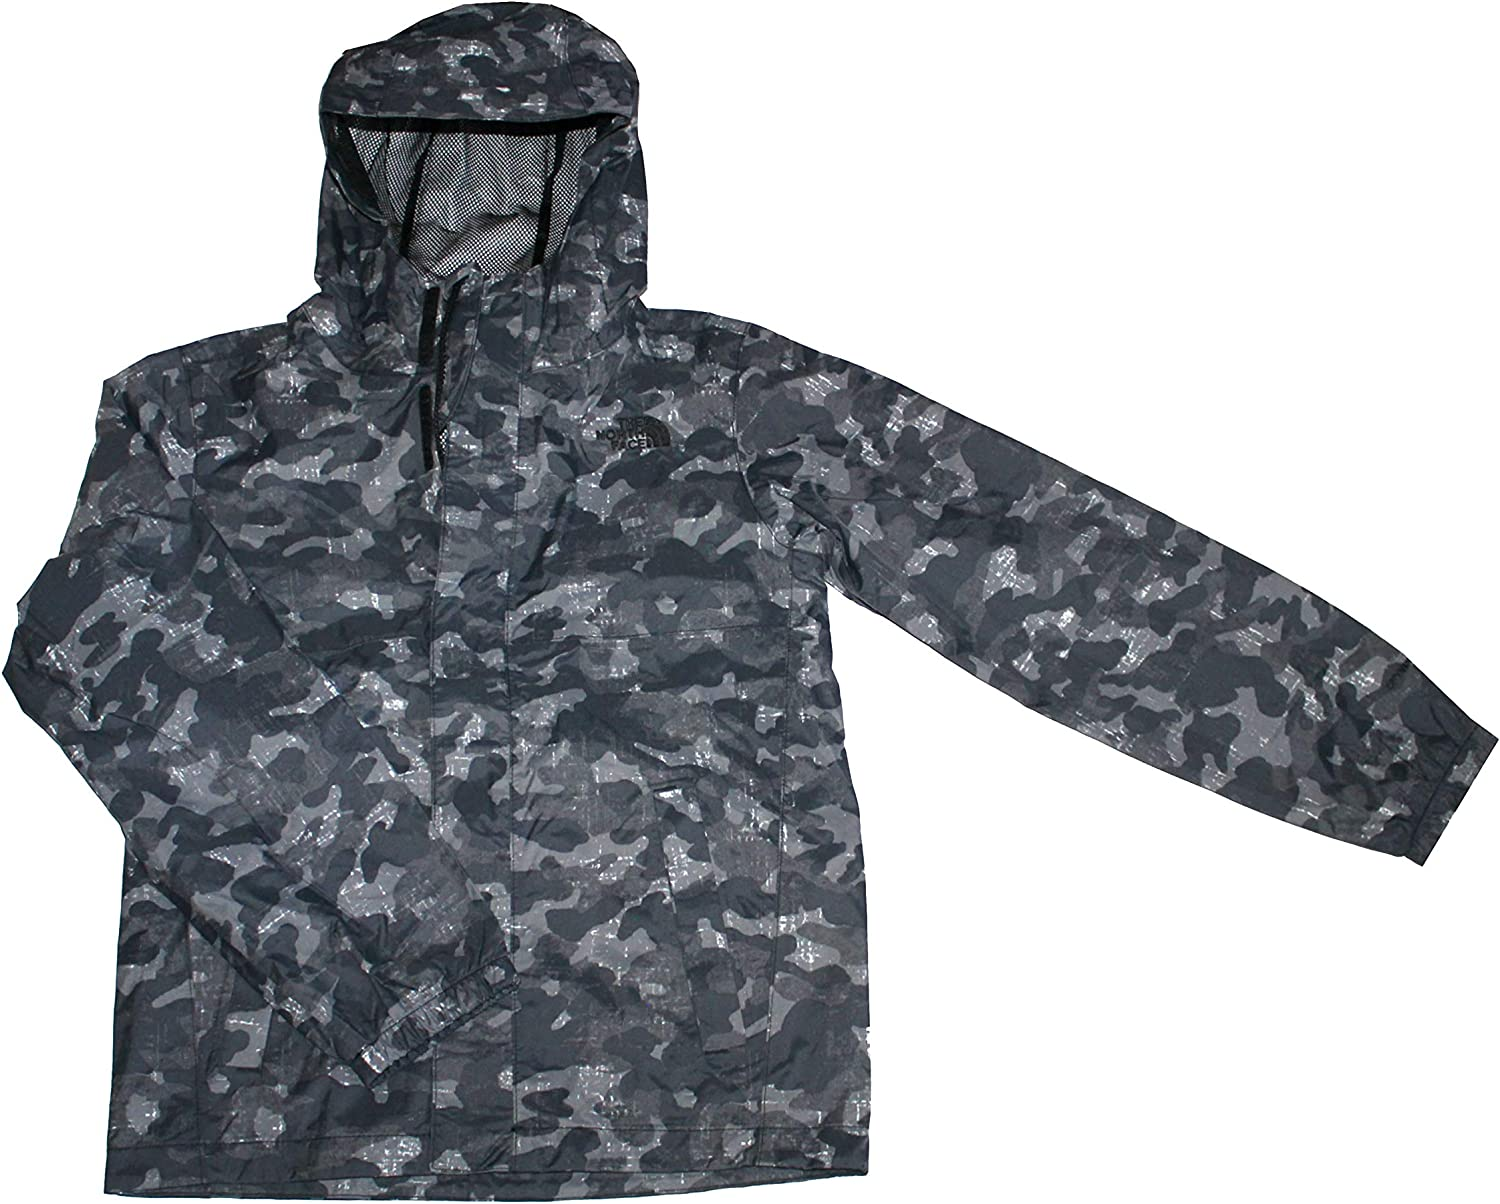 Sales of SALE items from new works The North Face James Shell Youth Boys Jacket Max 56% OFF Hooded Rain